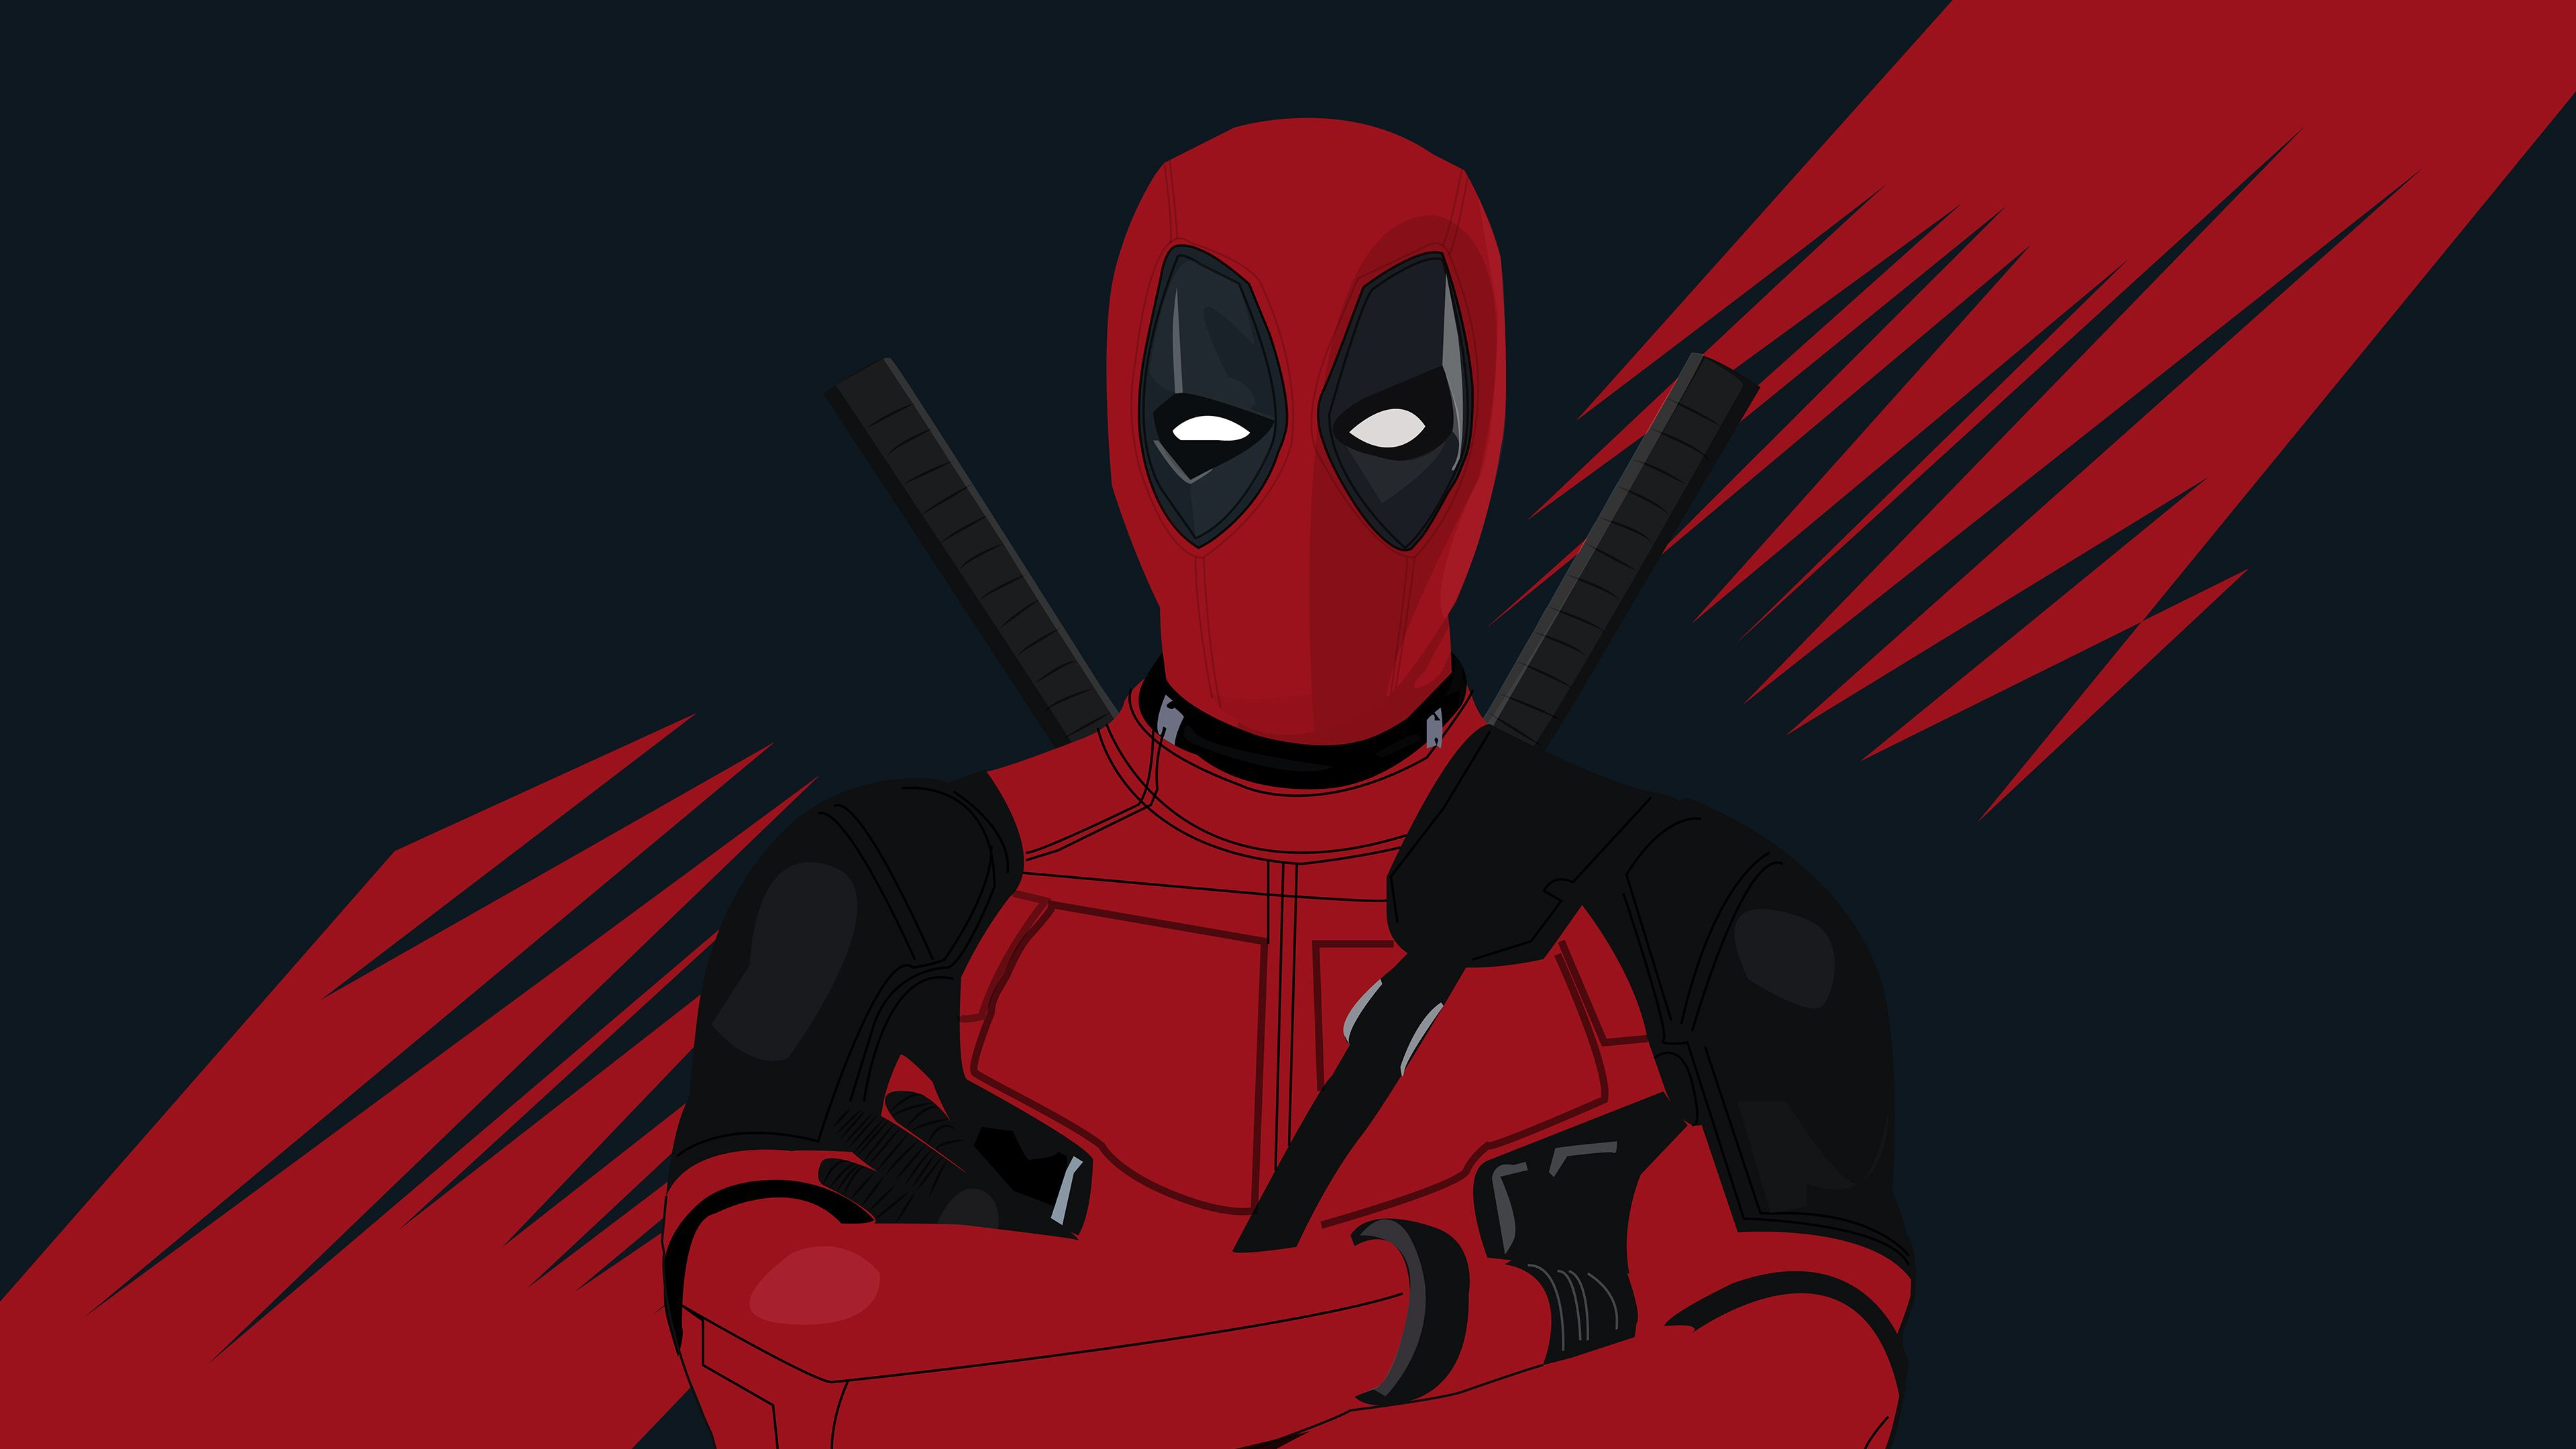 4k Deadpool Minimal 2019 superheroes wallpapers hd wallpapers 3840x2160